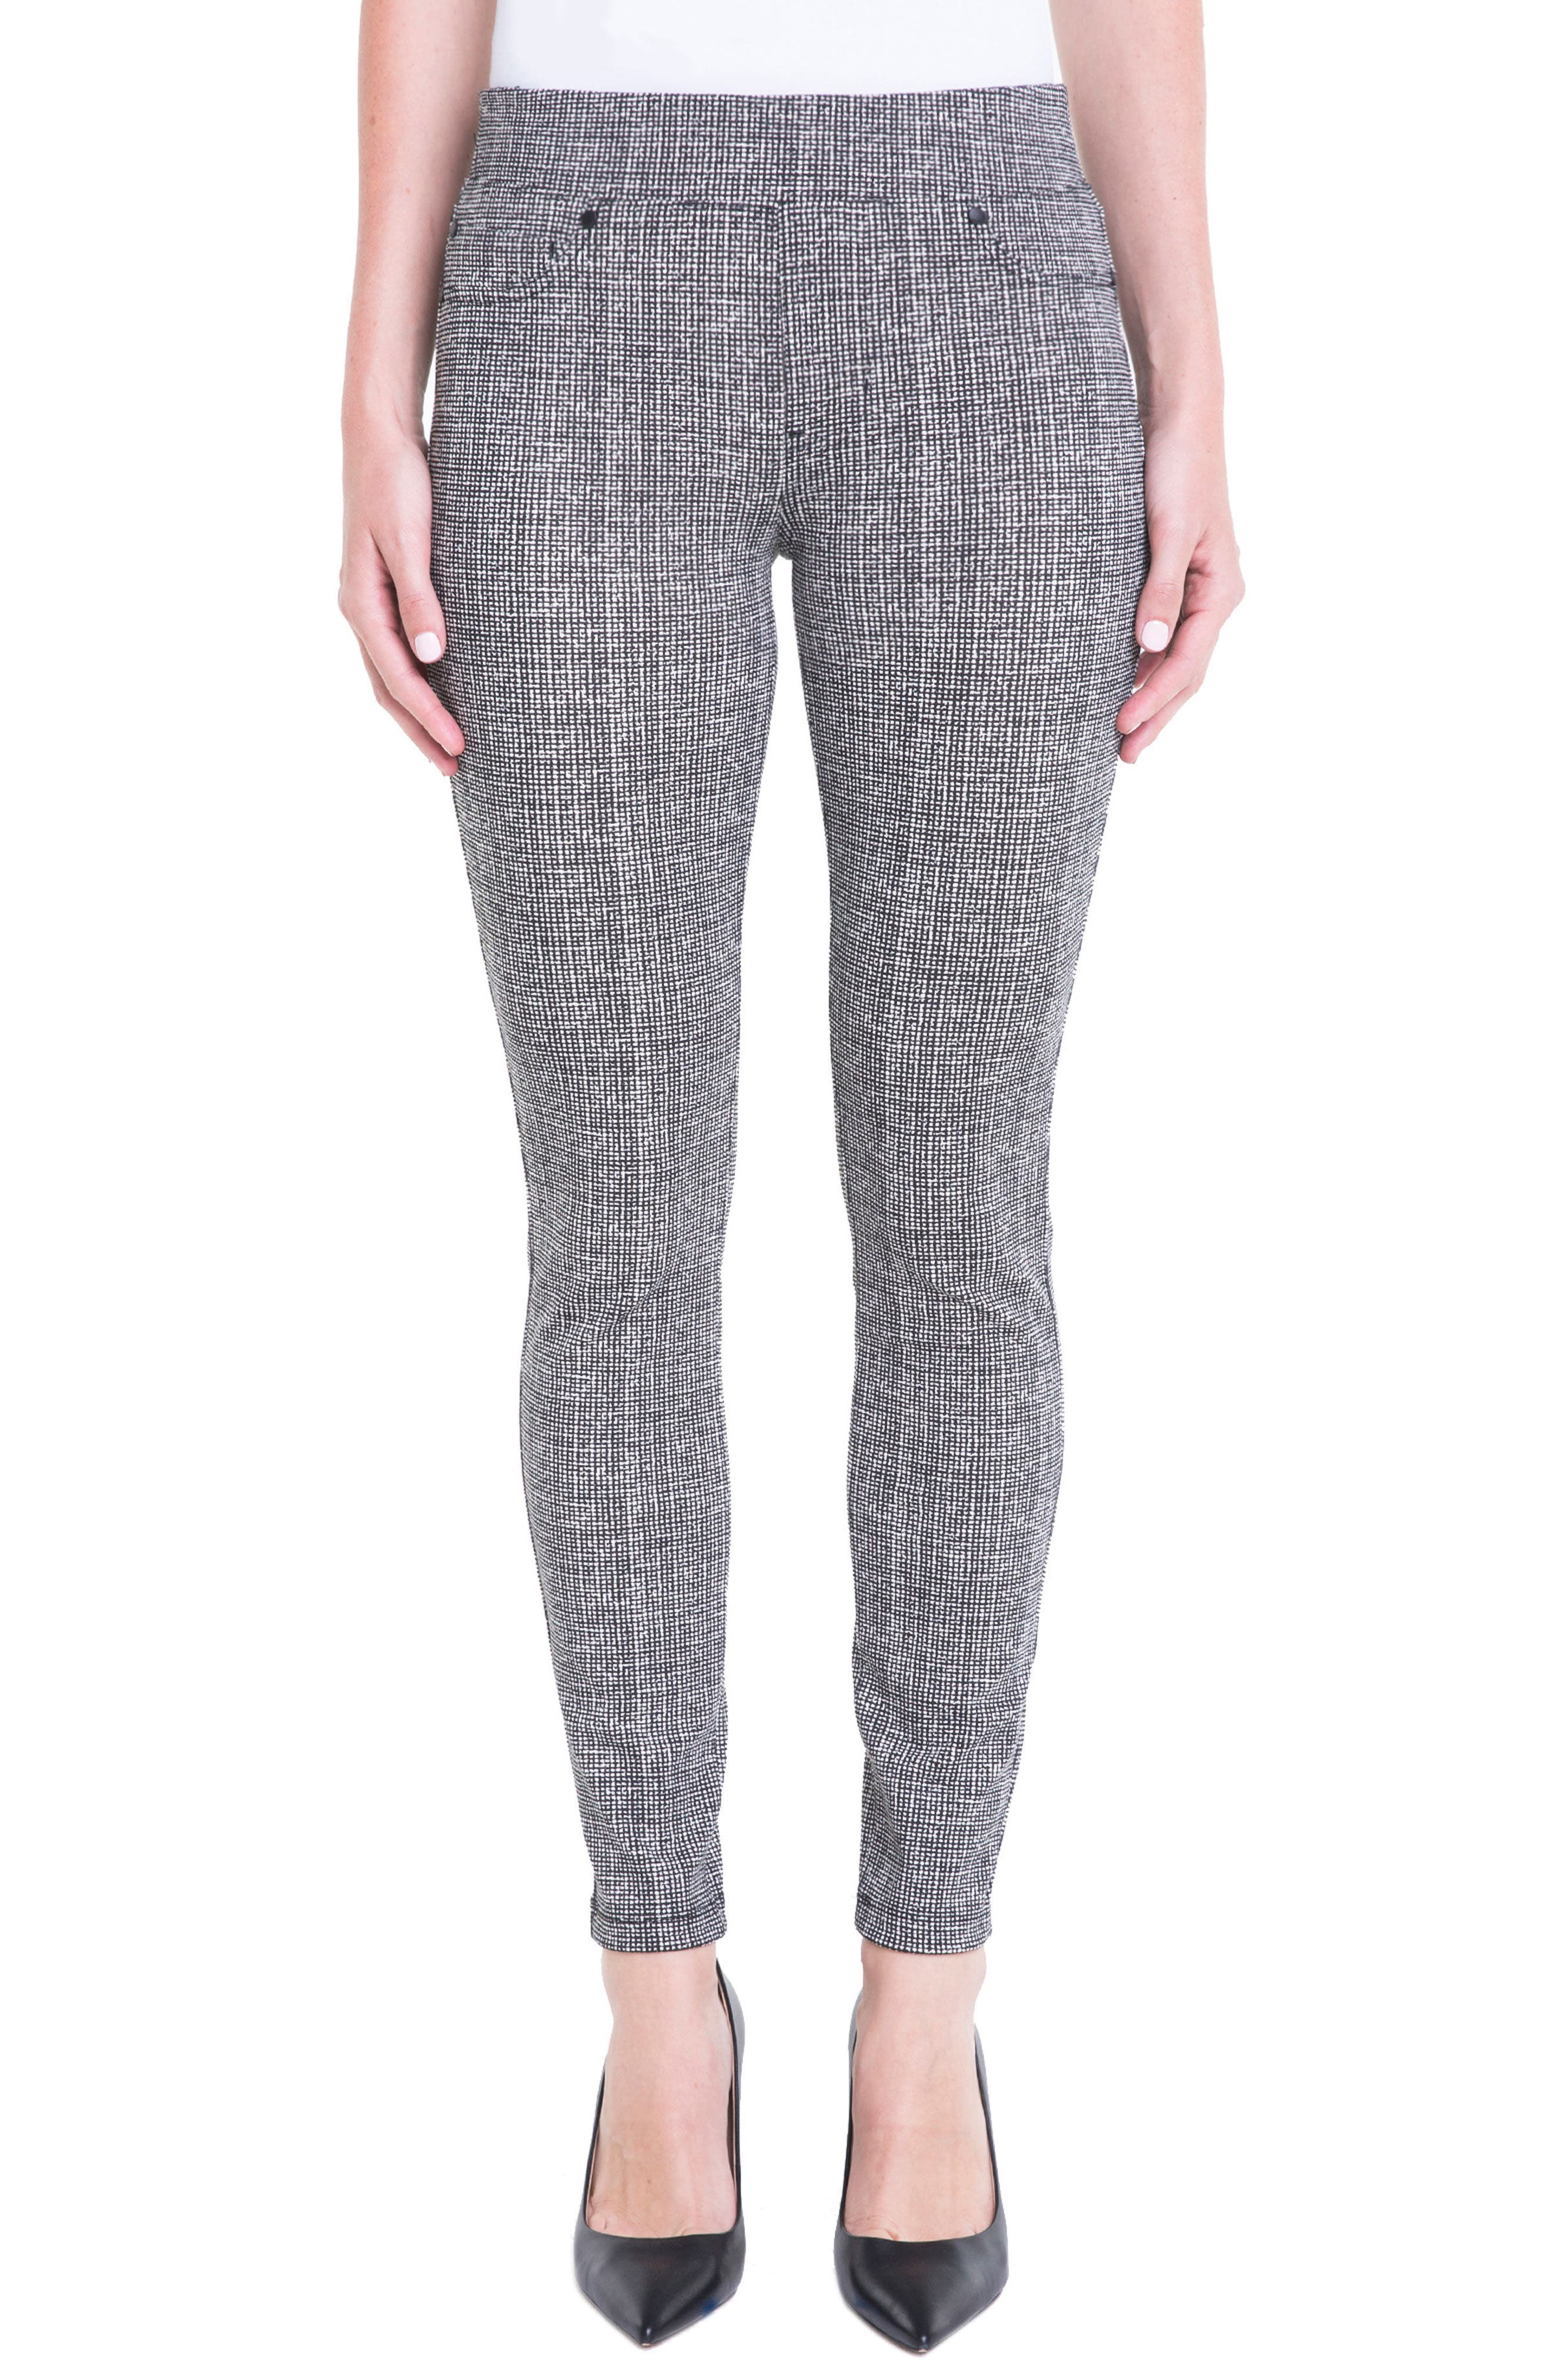 Liverpool Jeans Company Sienna Pull-On Leggings (White Whisper Tweed)